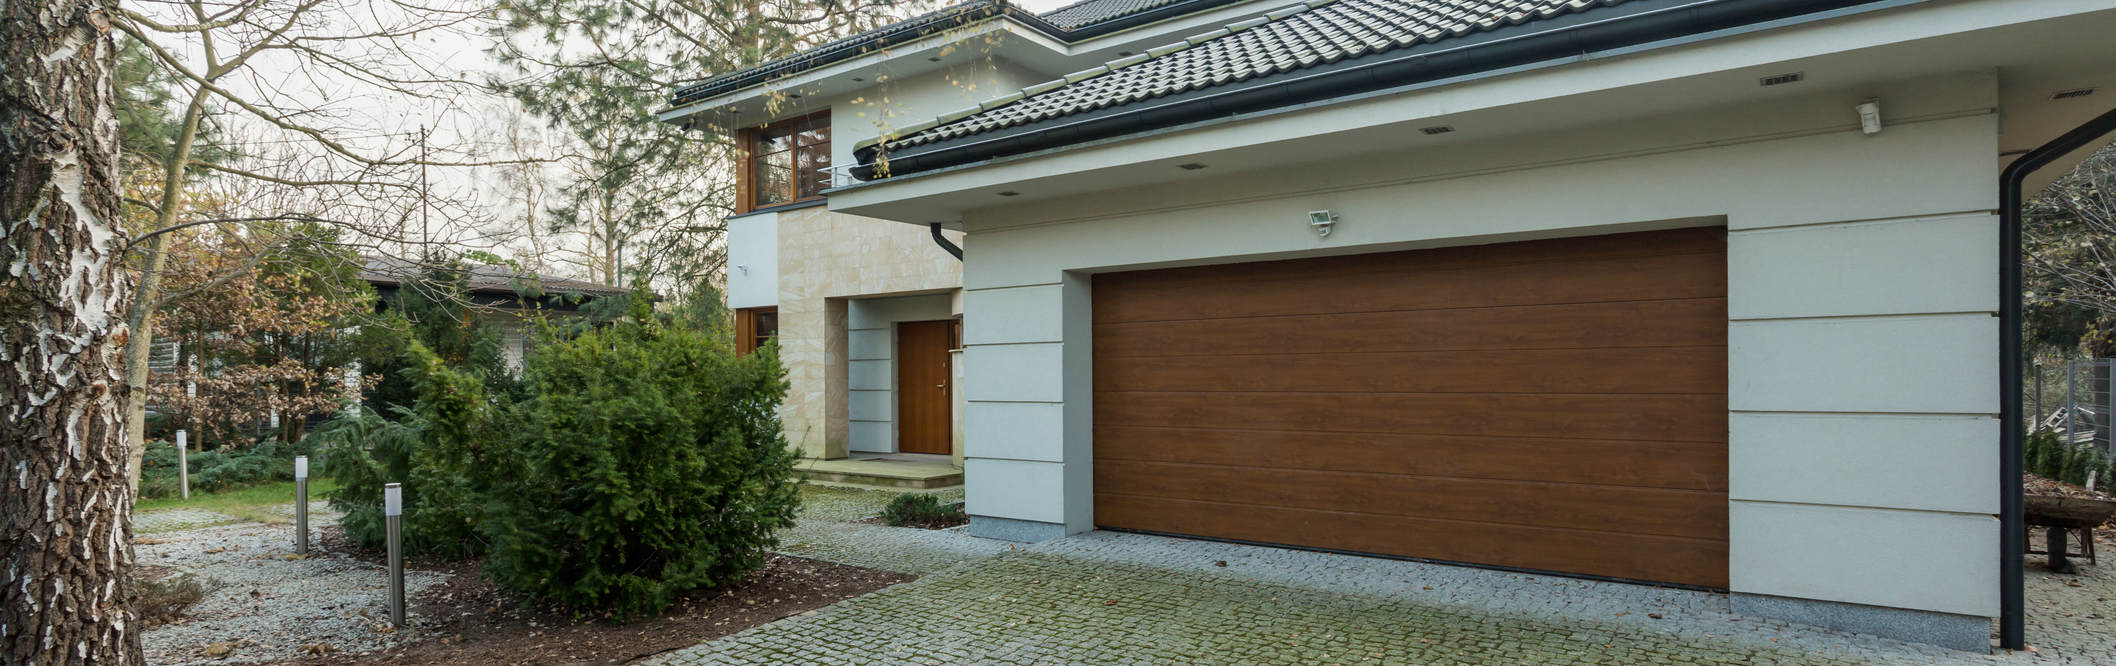 Garage Door Repair Service In Richmond, TX, 77406